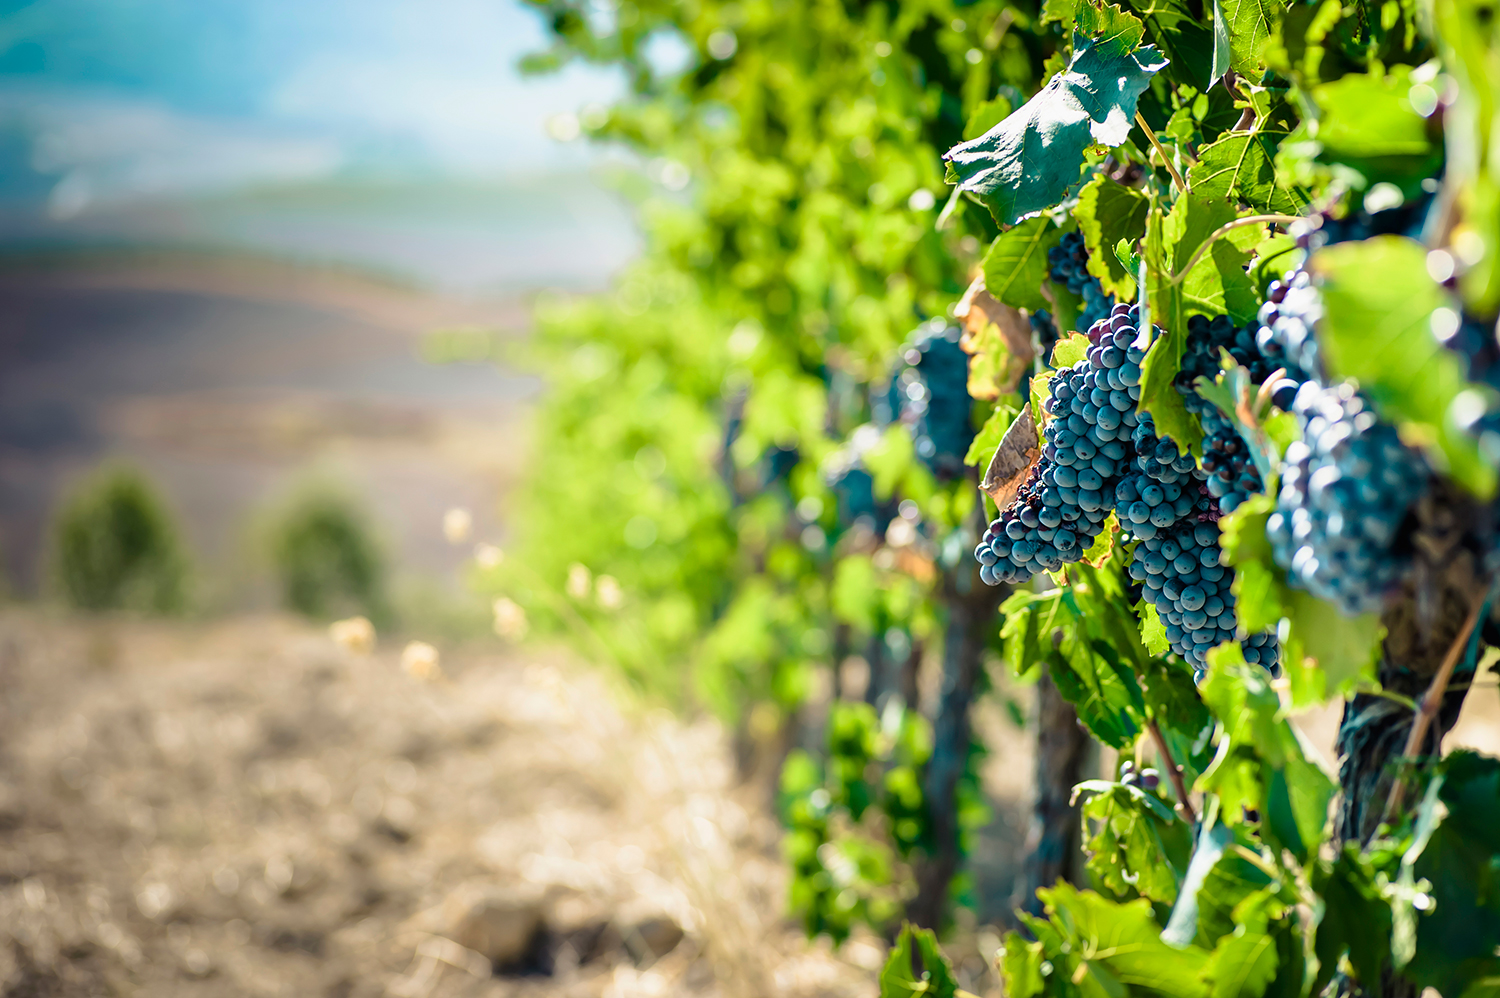 Grapes on Vine in Vineyard